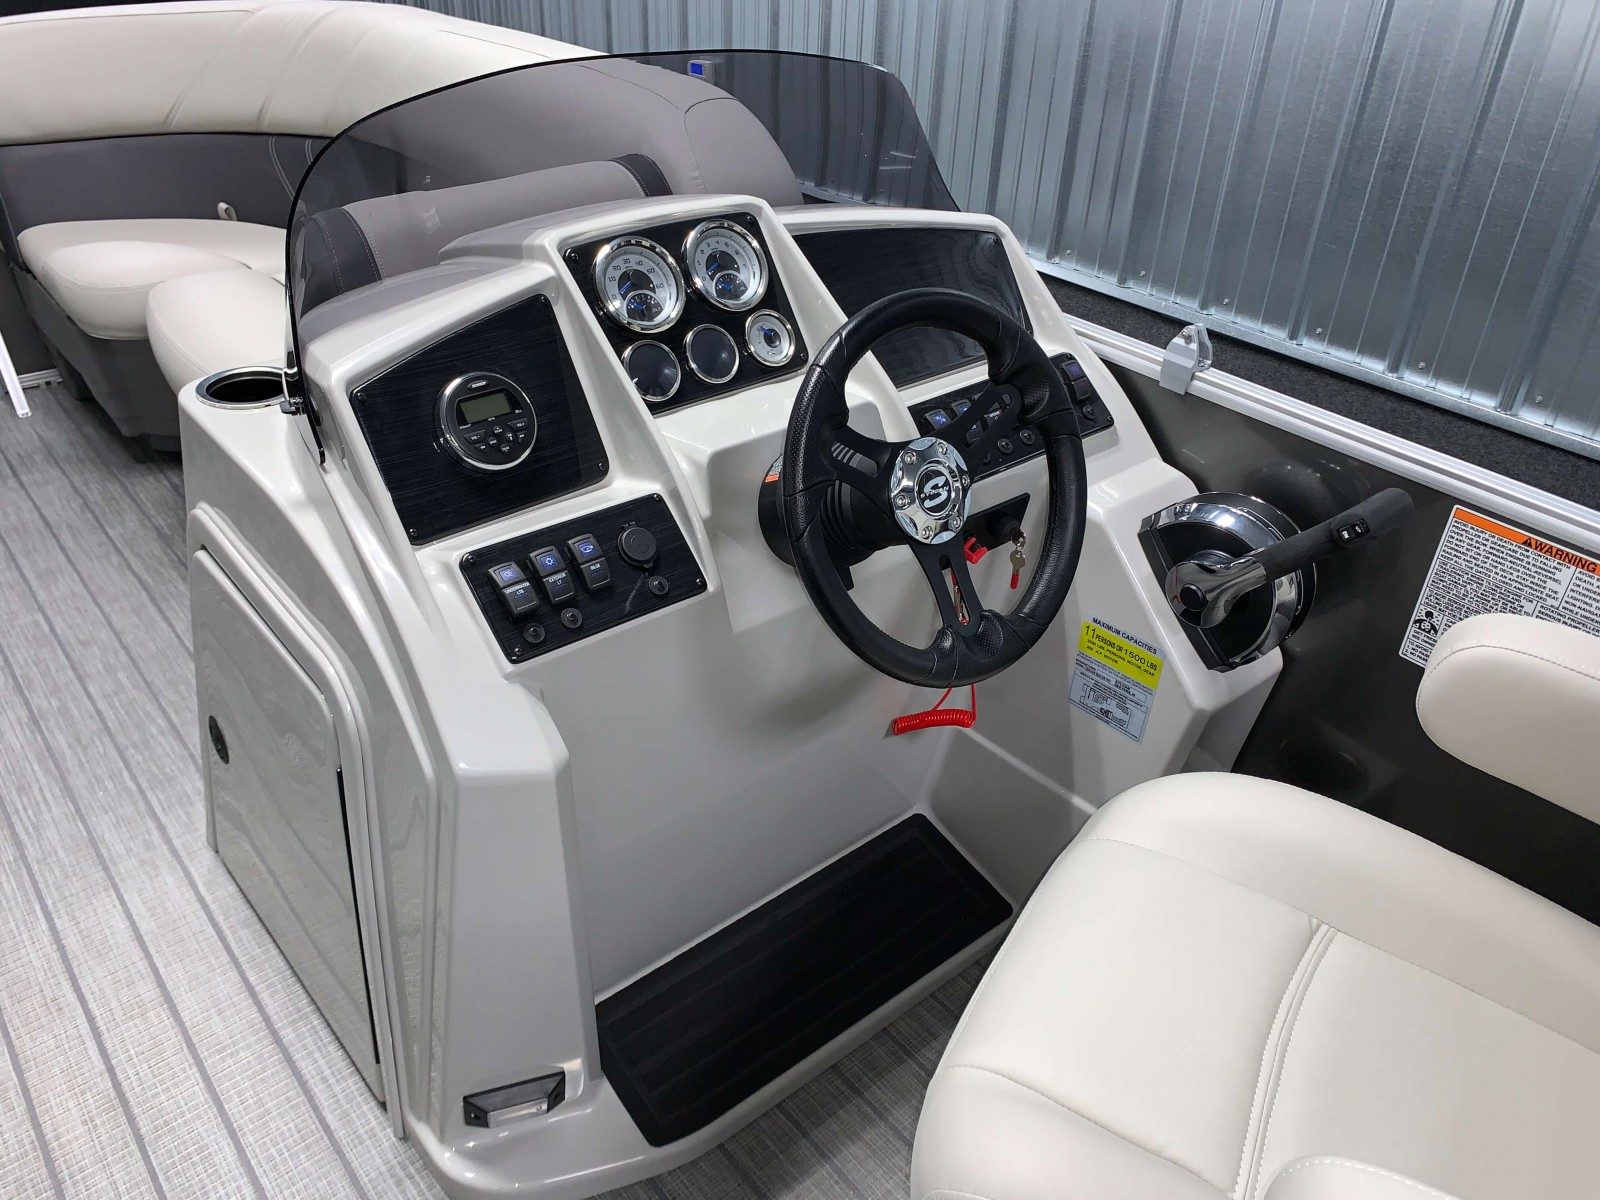 Drivers Console of a 2020 Sylvan Mirage 8520 Cruise Tritoon 1